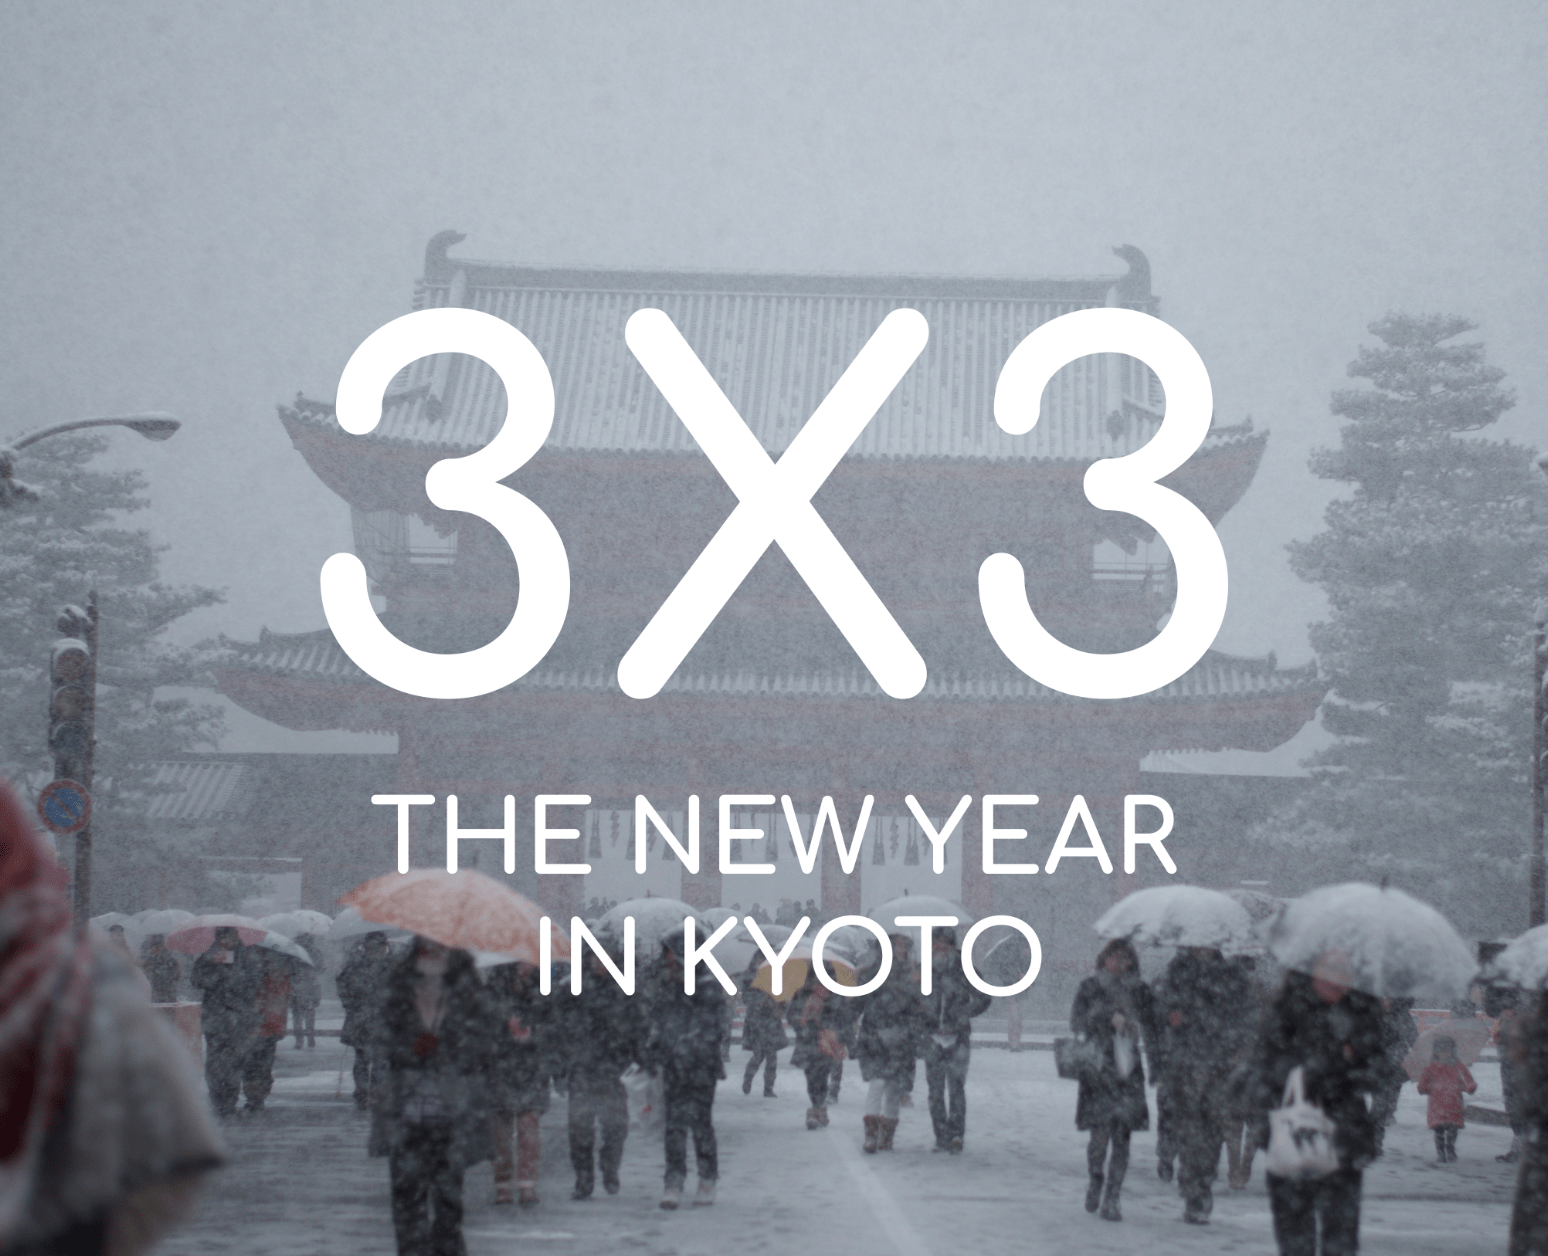 3X3: The New Year in Kyoto